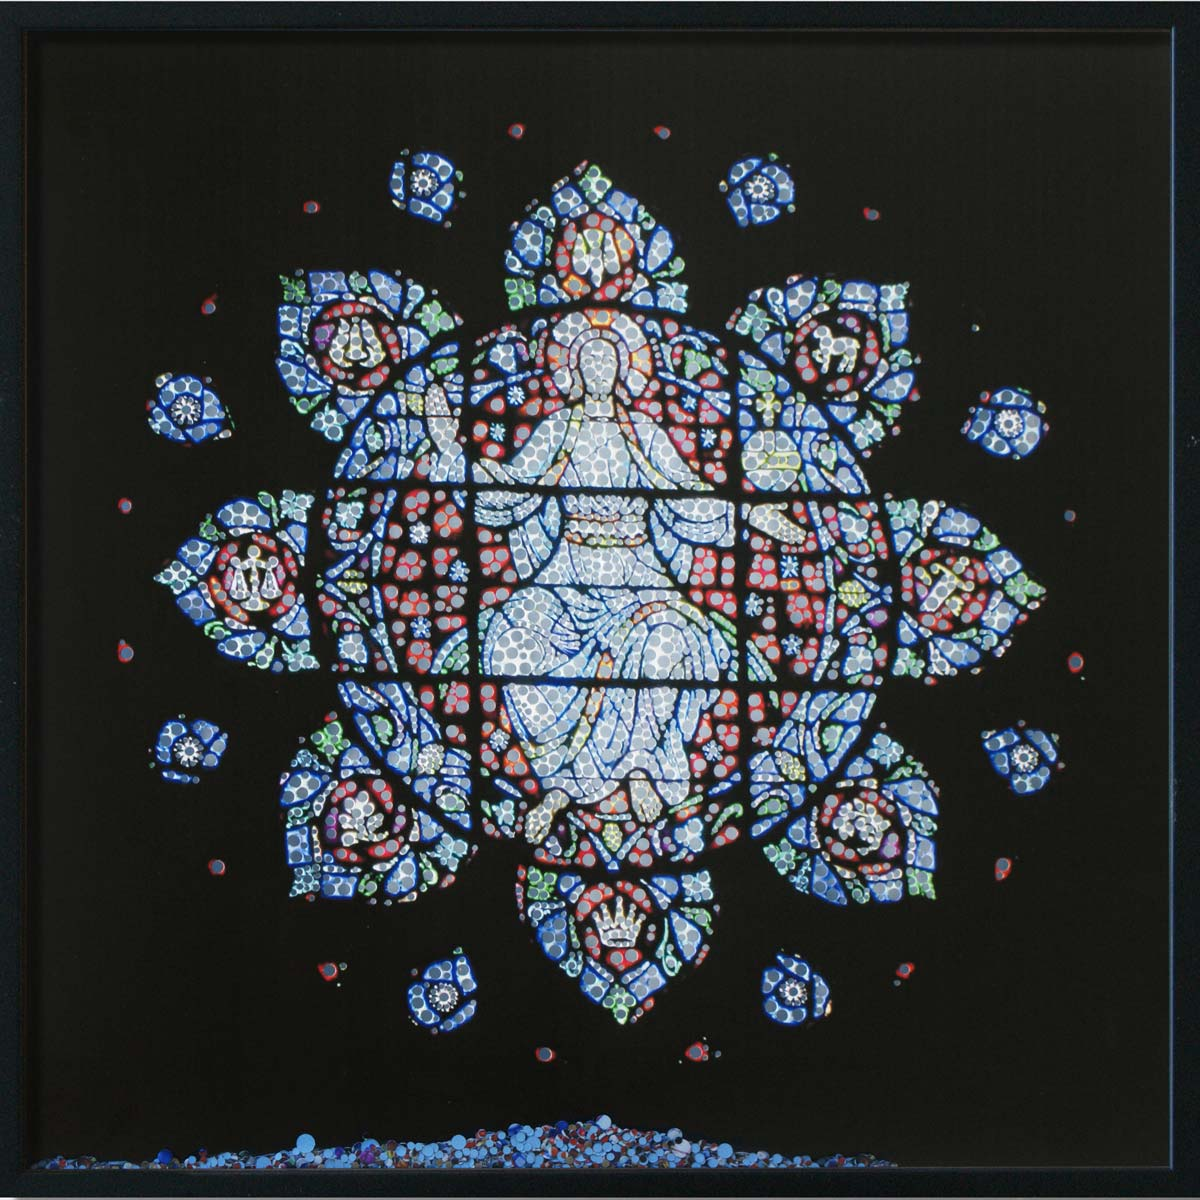 Revelation, Marsch Chapel Boston, © 2011, Perforated inkjet print, loose confetti produced by the perforation process, each 50 x 50 cm